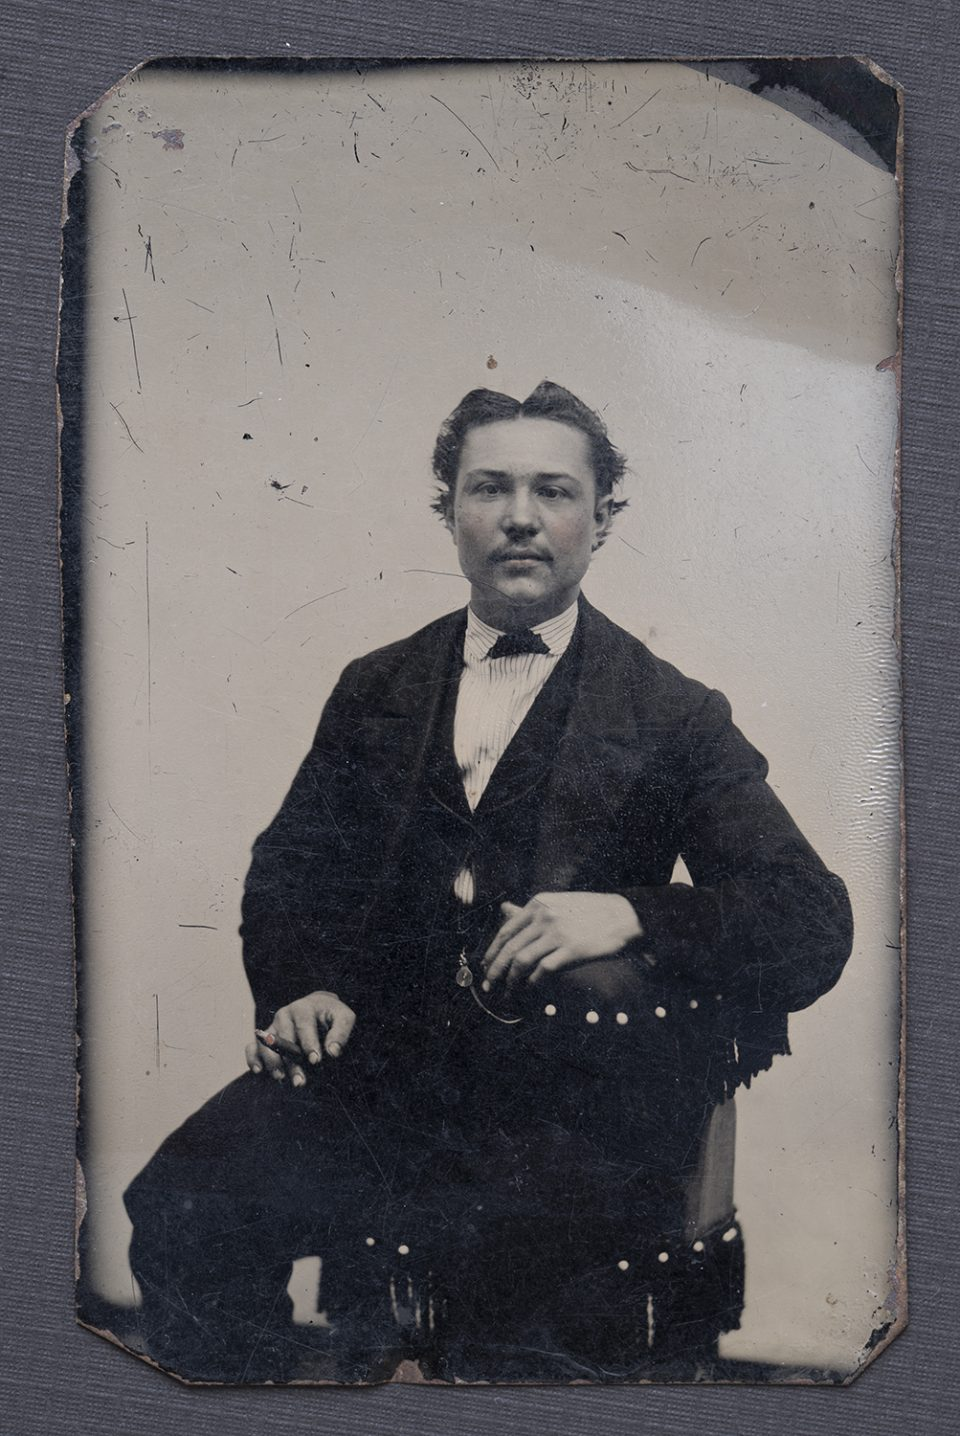 Tintype portrait of a young man: date, location, and identity unknown. Copy photograph by Keith Dotson.